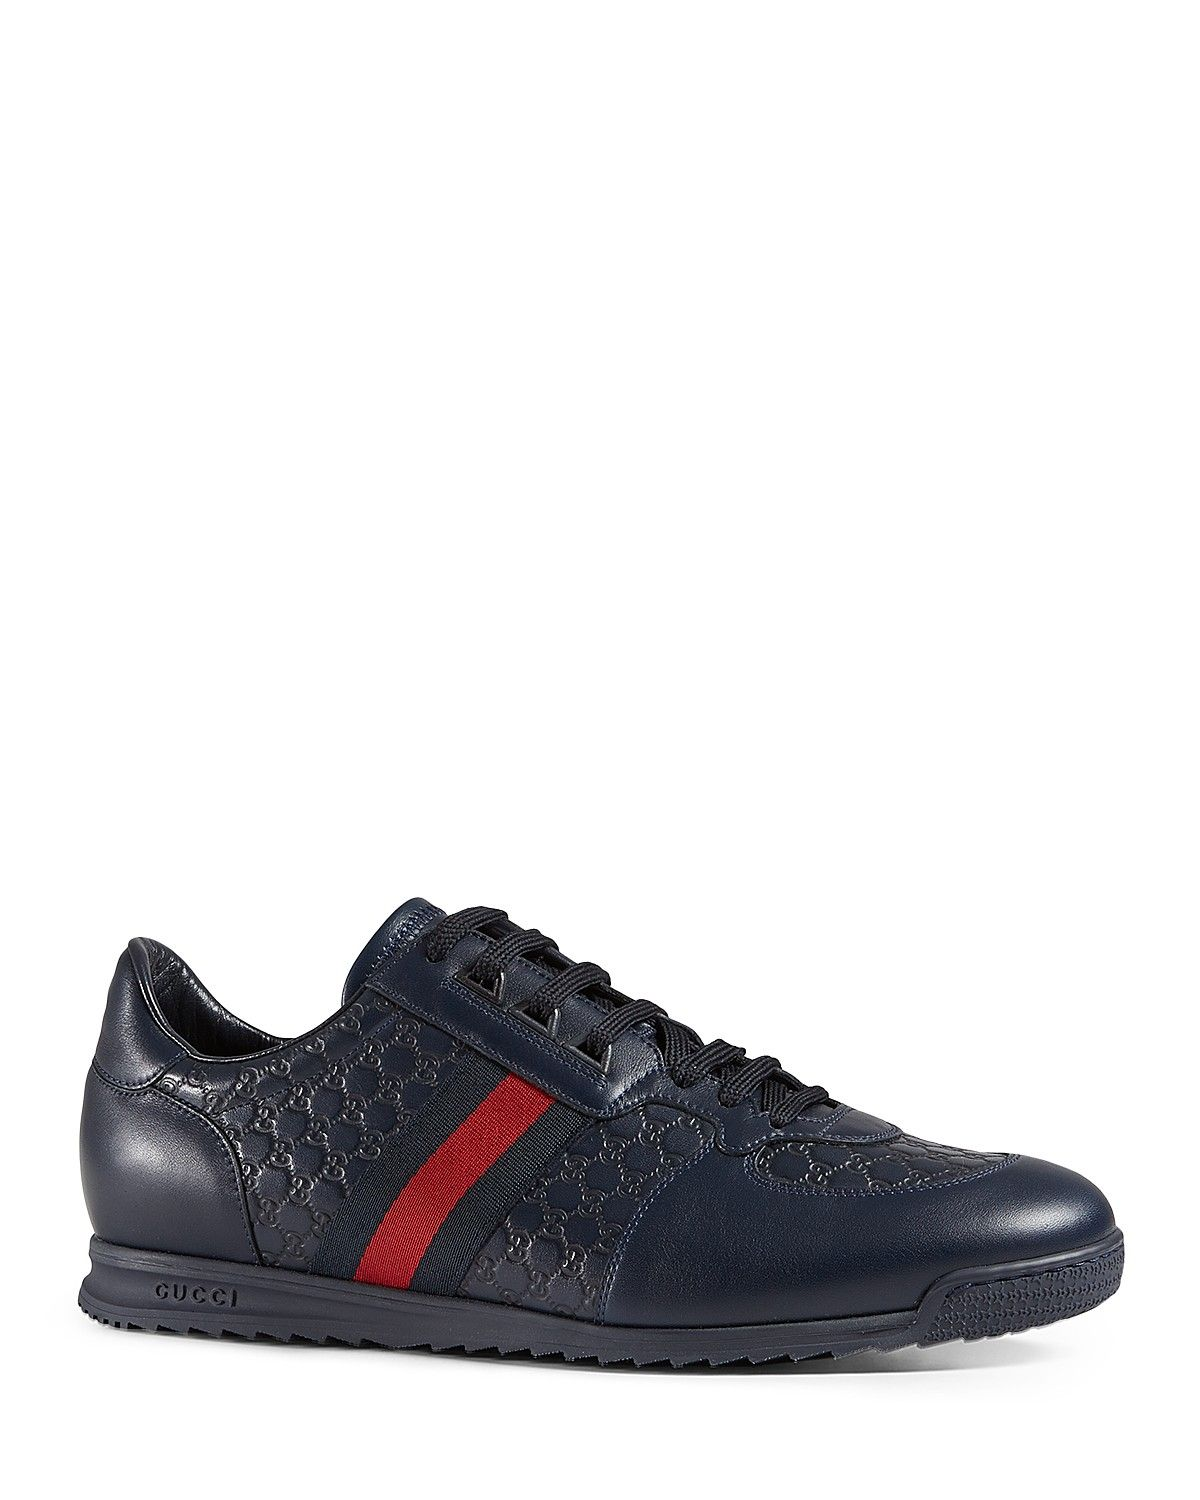 88226c885 Gucci Micro Guccissima Lace-Up Sneaker with Web Detail | Clothes and ...